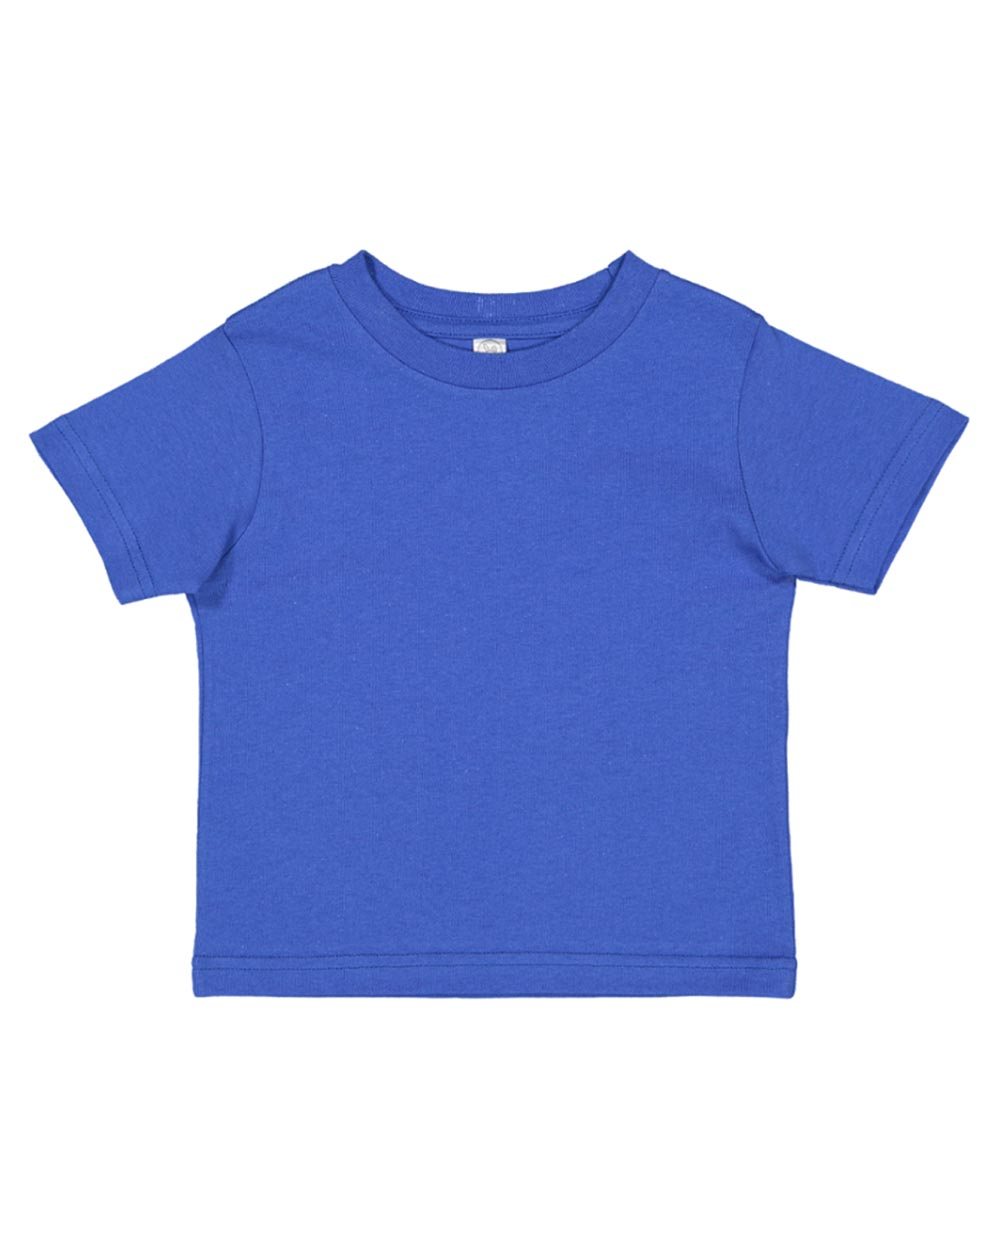 Rabbit Skins 3321 - Toddler Fine Jersey T-Shirt